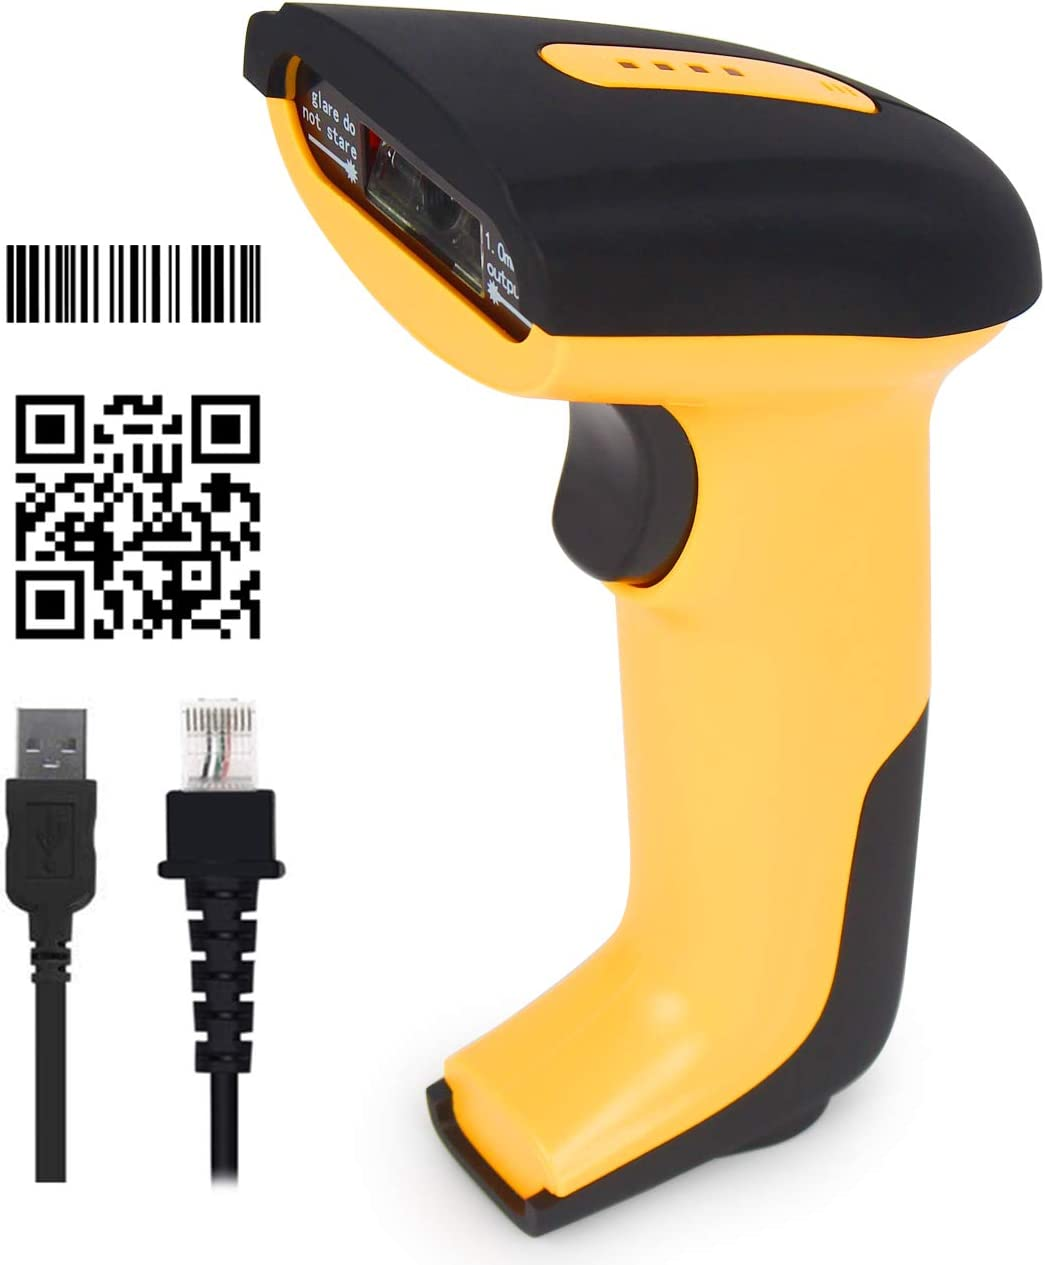 CHITENG 1D Barcode Scanner USB Barcode Reader Long Range High Speed Optical Laser Handheld Barcode Scanner Compatible with Windows Linux Android etc.